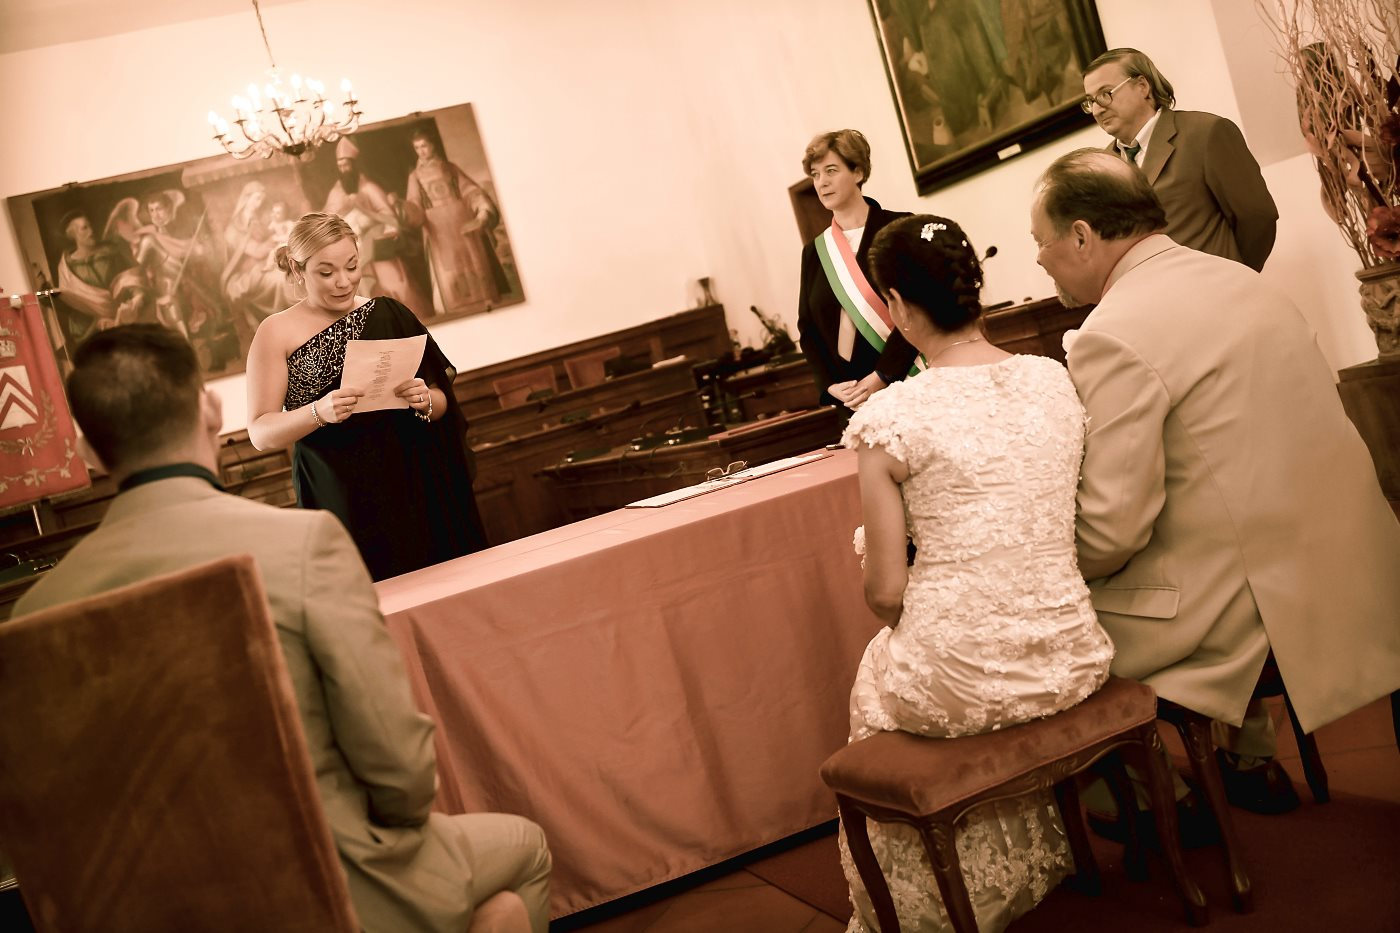 wedding photo lastra a signa_08.jpg